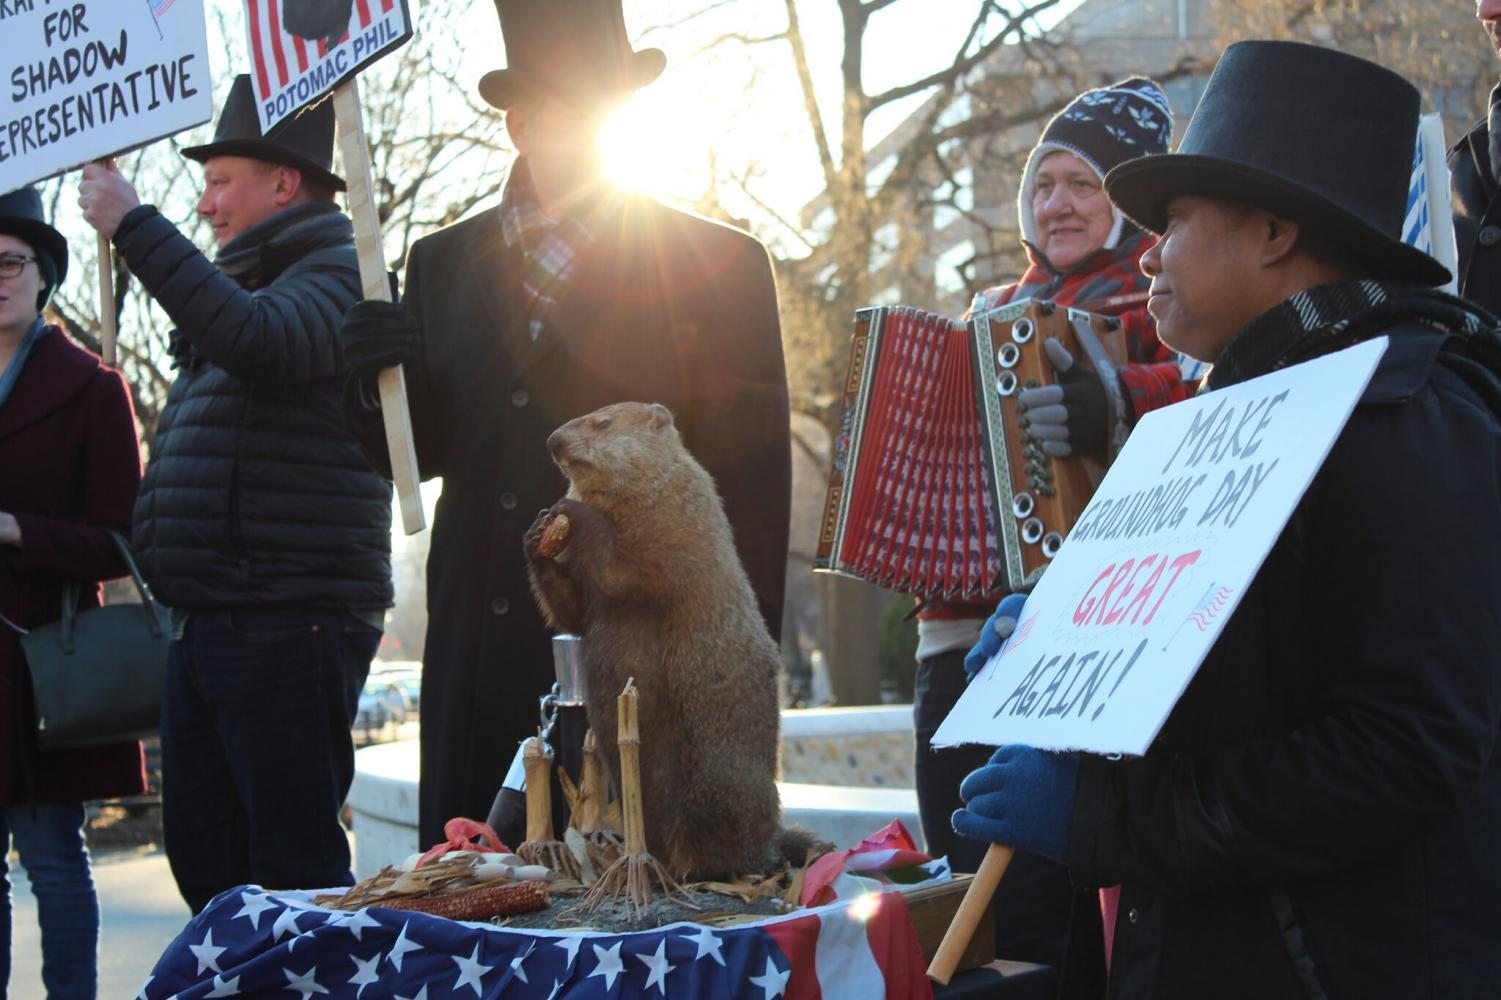 D.C. residents congregate in DuPont Circle for D.C.'s annual Groundhog Day. Since 2012, Potomac Phil has offered his winter weather predictions. Photo by Eva Herscowitz.